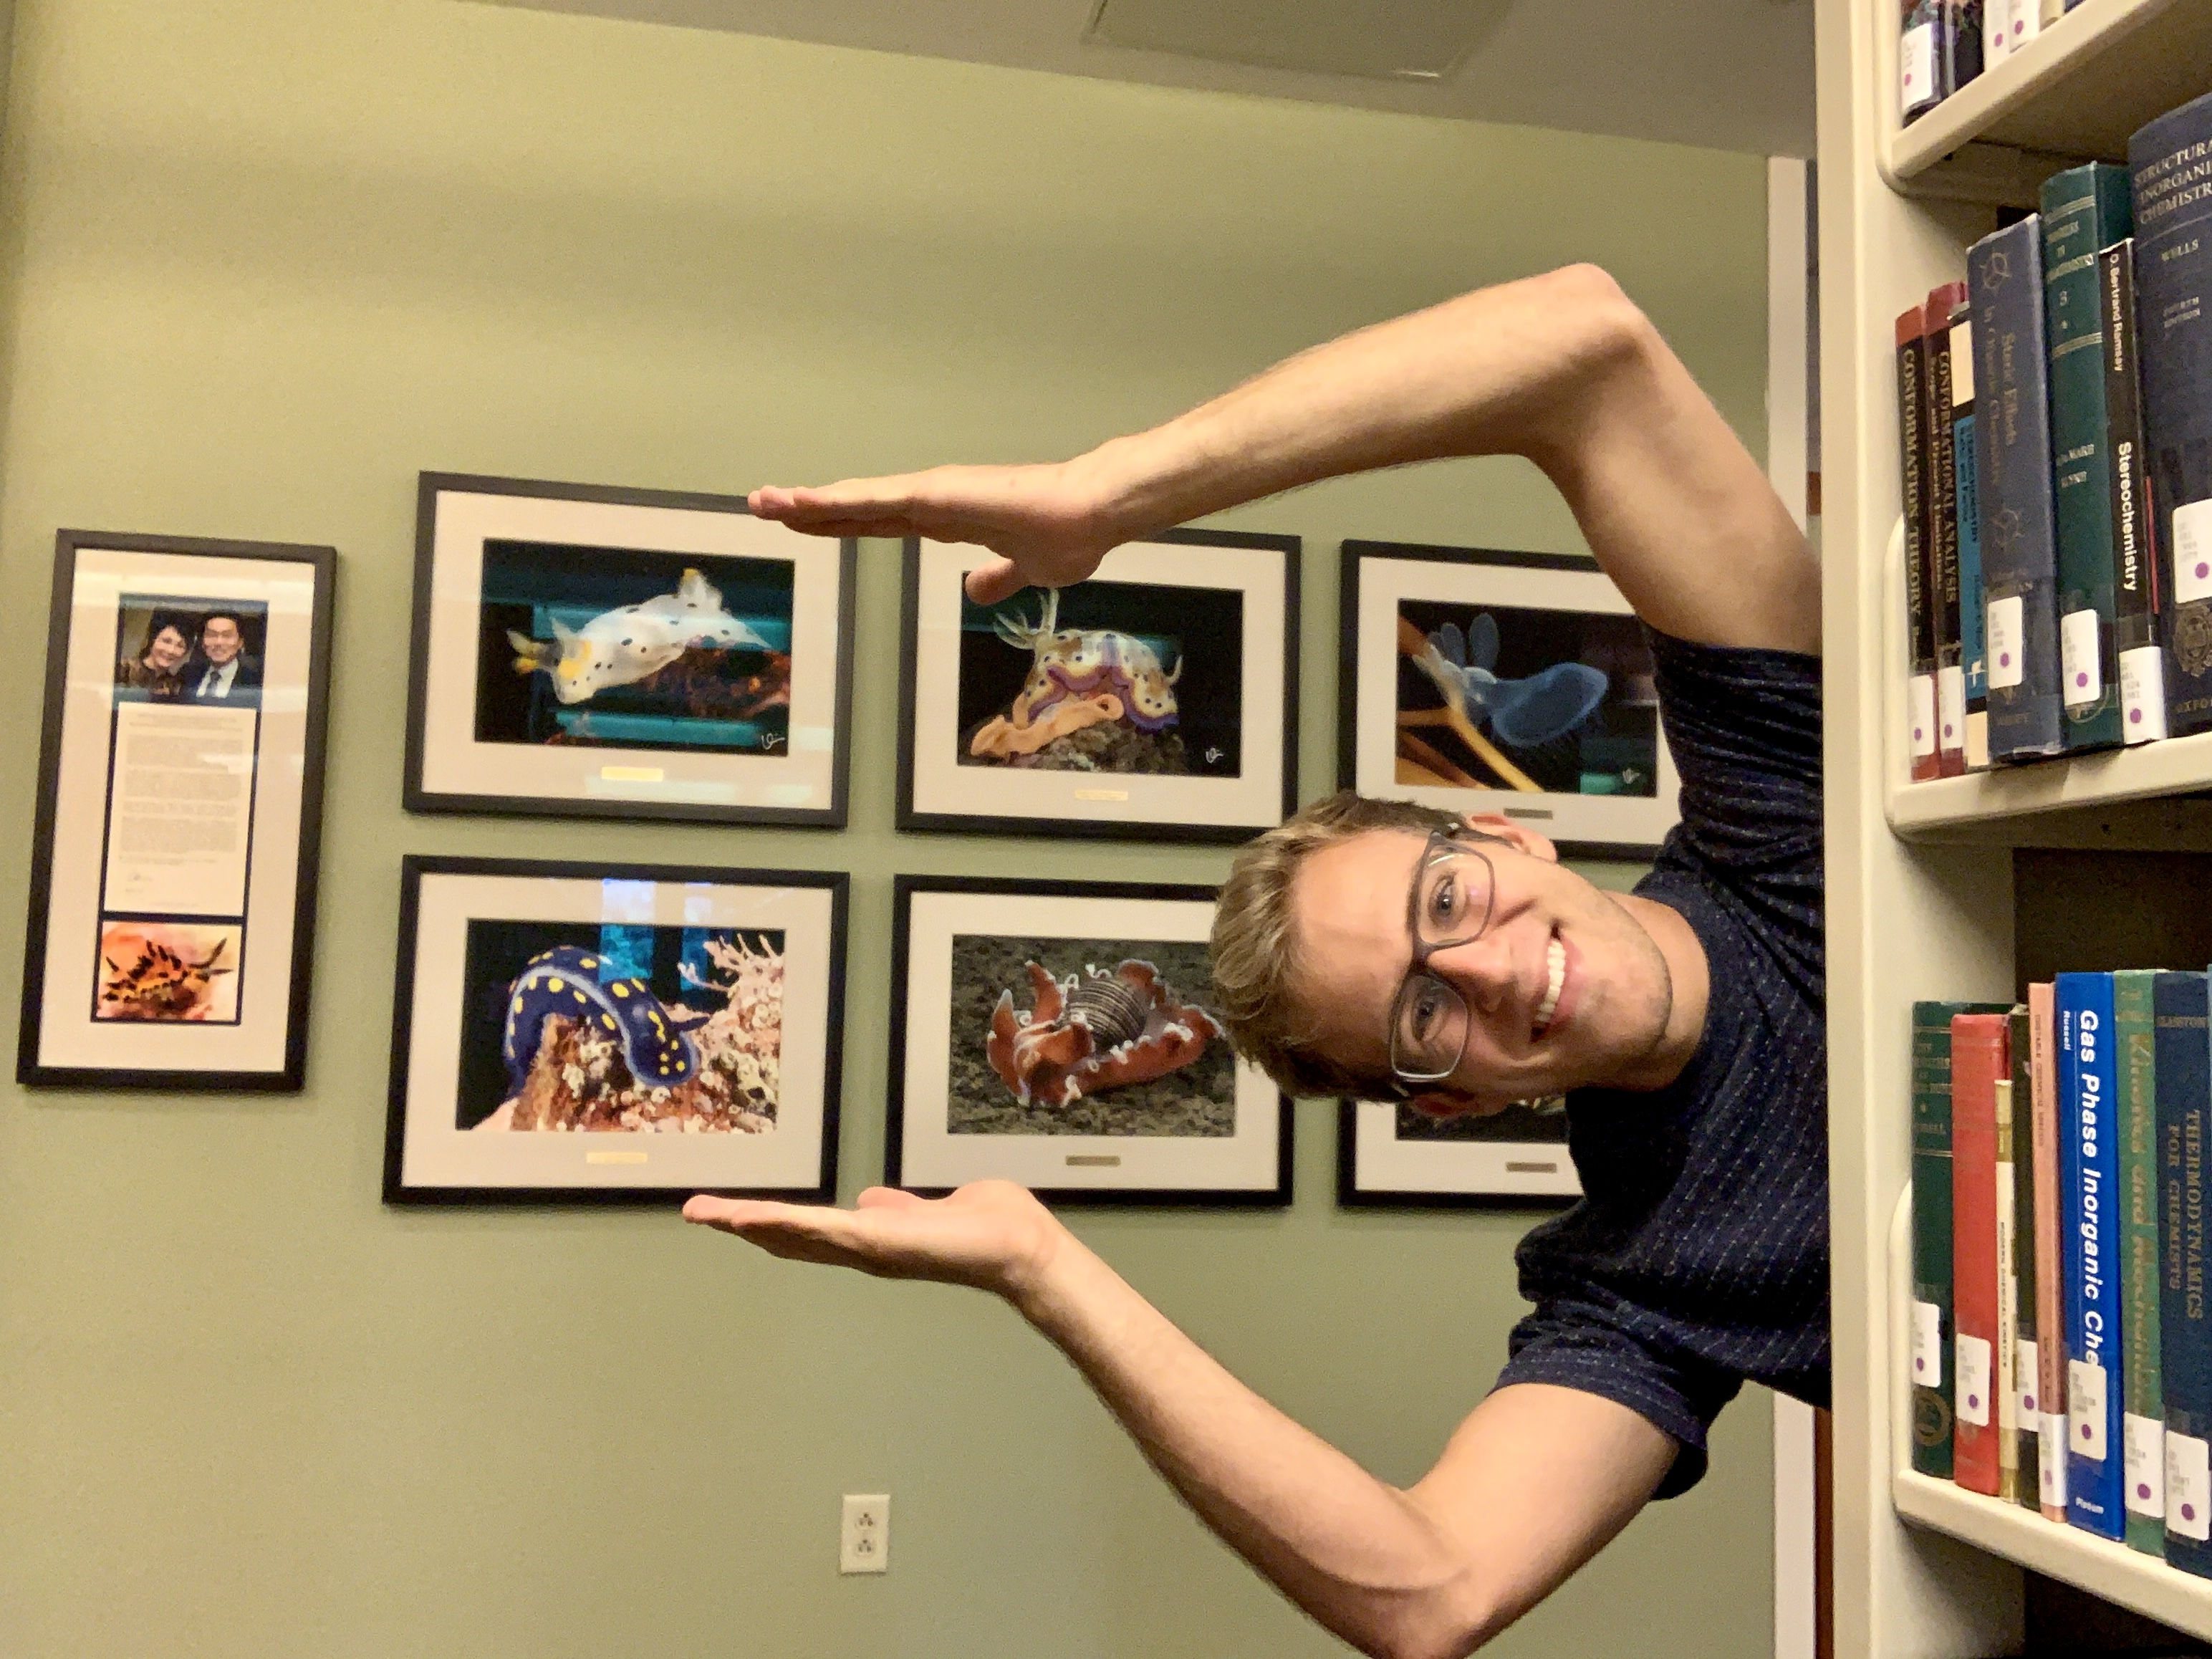 Jimmy posing sideways, as if swimming, with a wall of framed photos behind him.